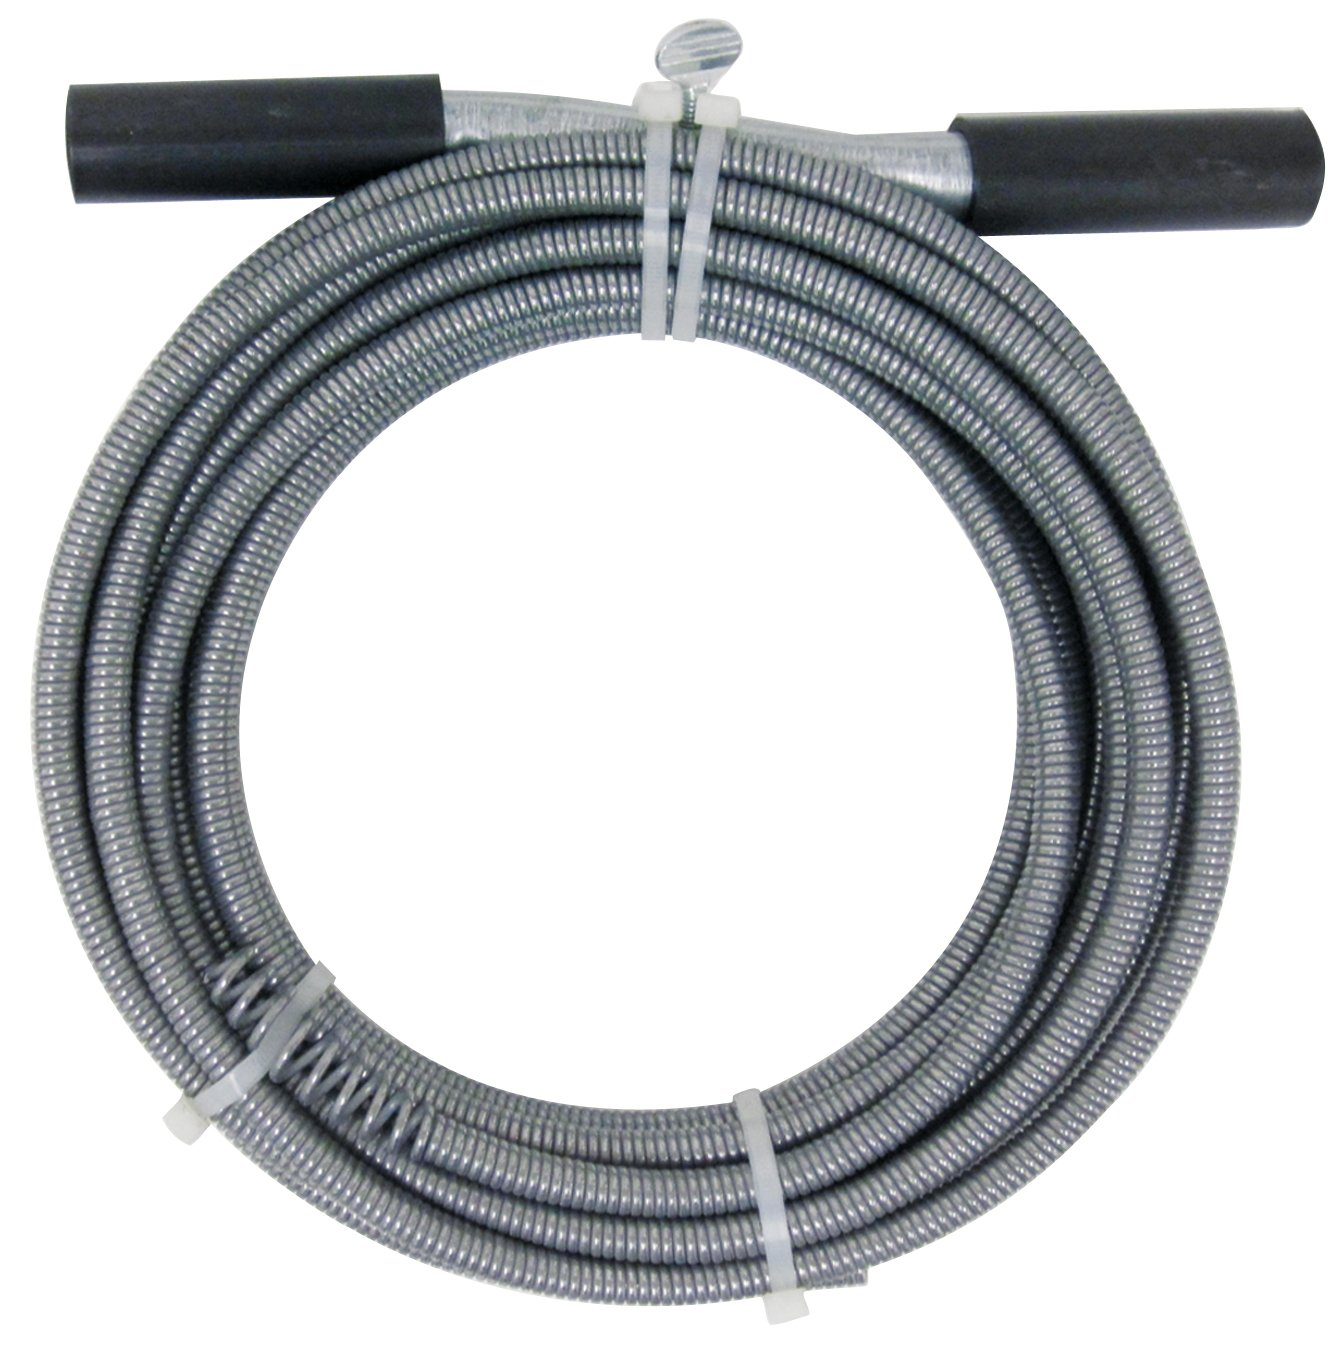 Cobra Products 30500 Cobra 30000 Pipe Auger, for Use with Most Small and Medium Household Drains, 1/2 in X 50 Ft, 50' by Cobra Products